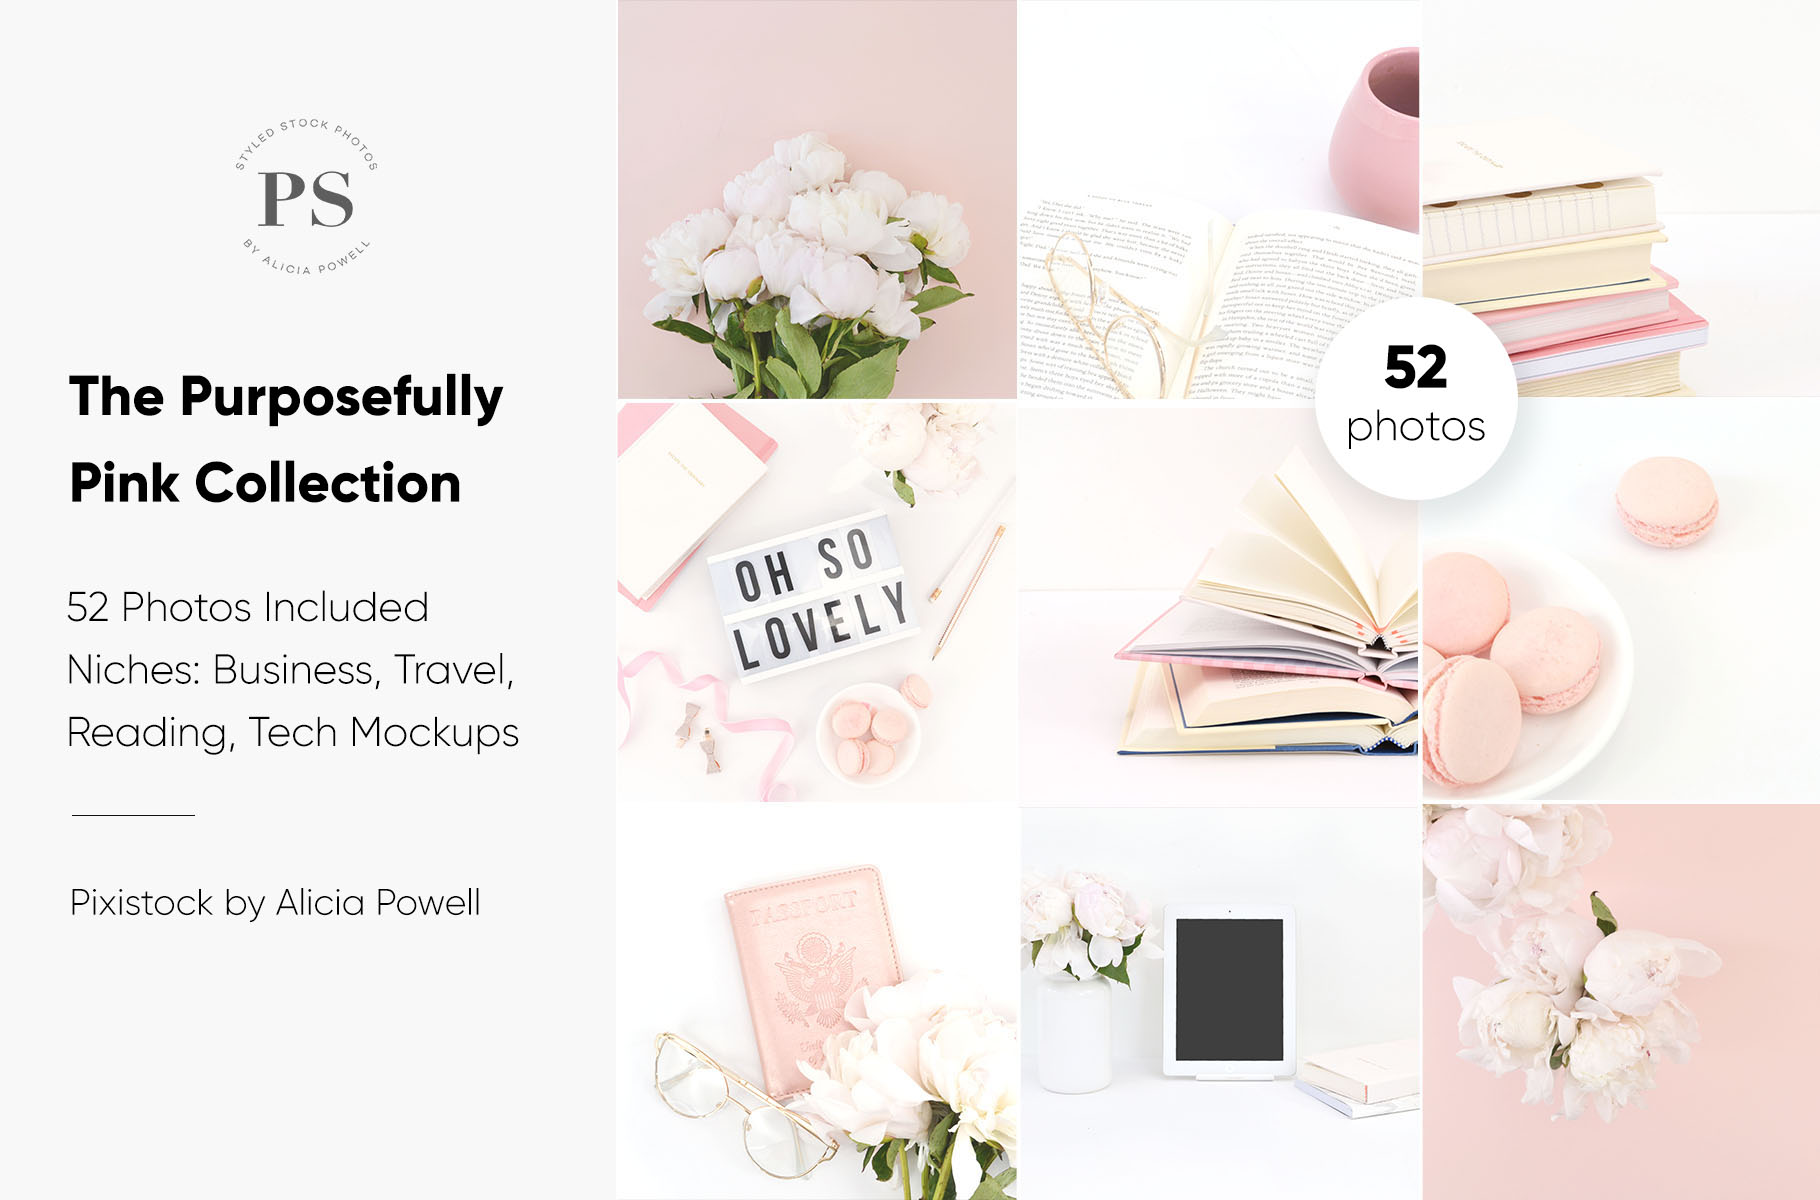 Purposefully Pink Stock Photo Collection